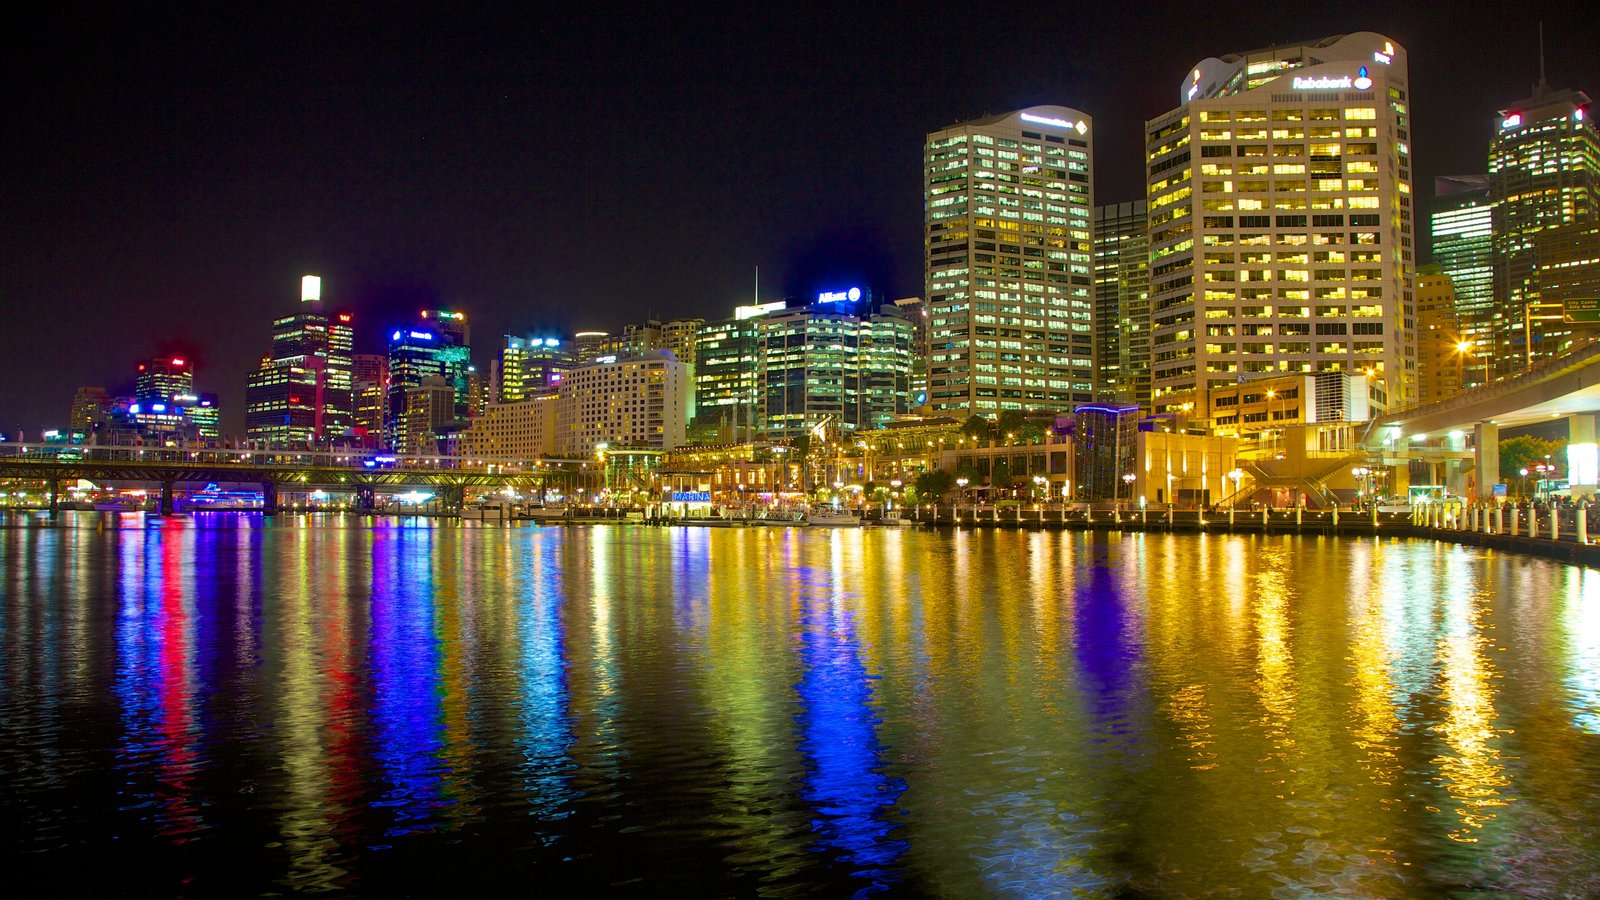 Sydney showing a bay or harbor, a city and night scenes